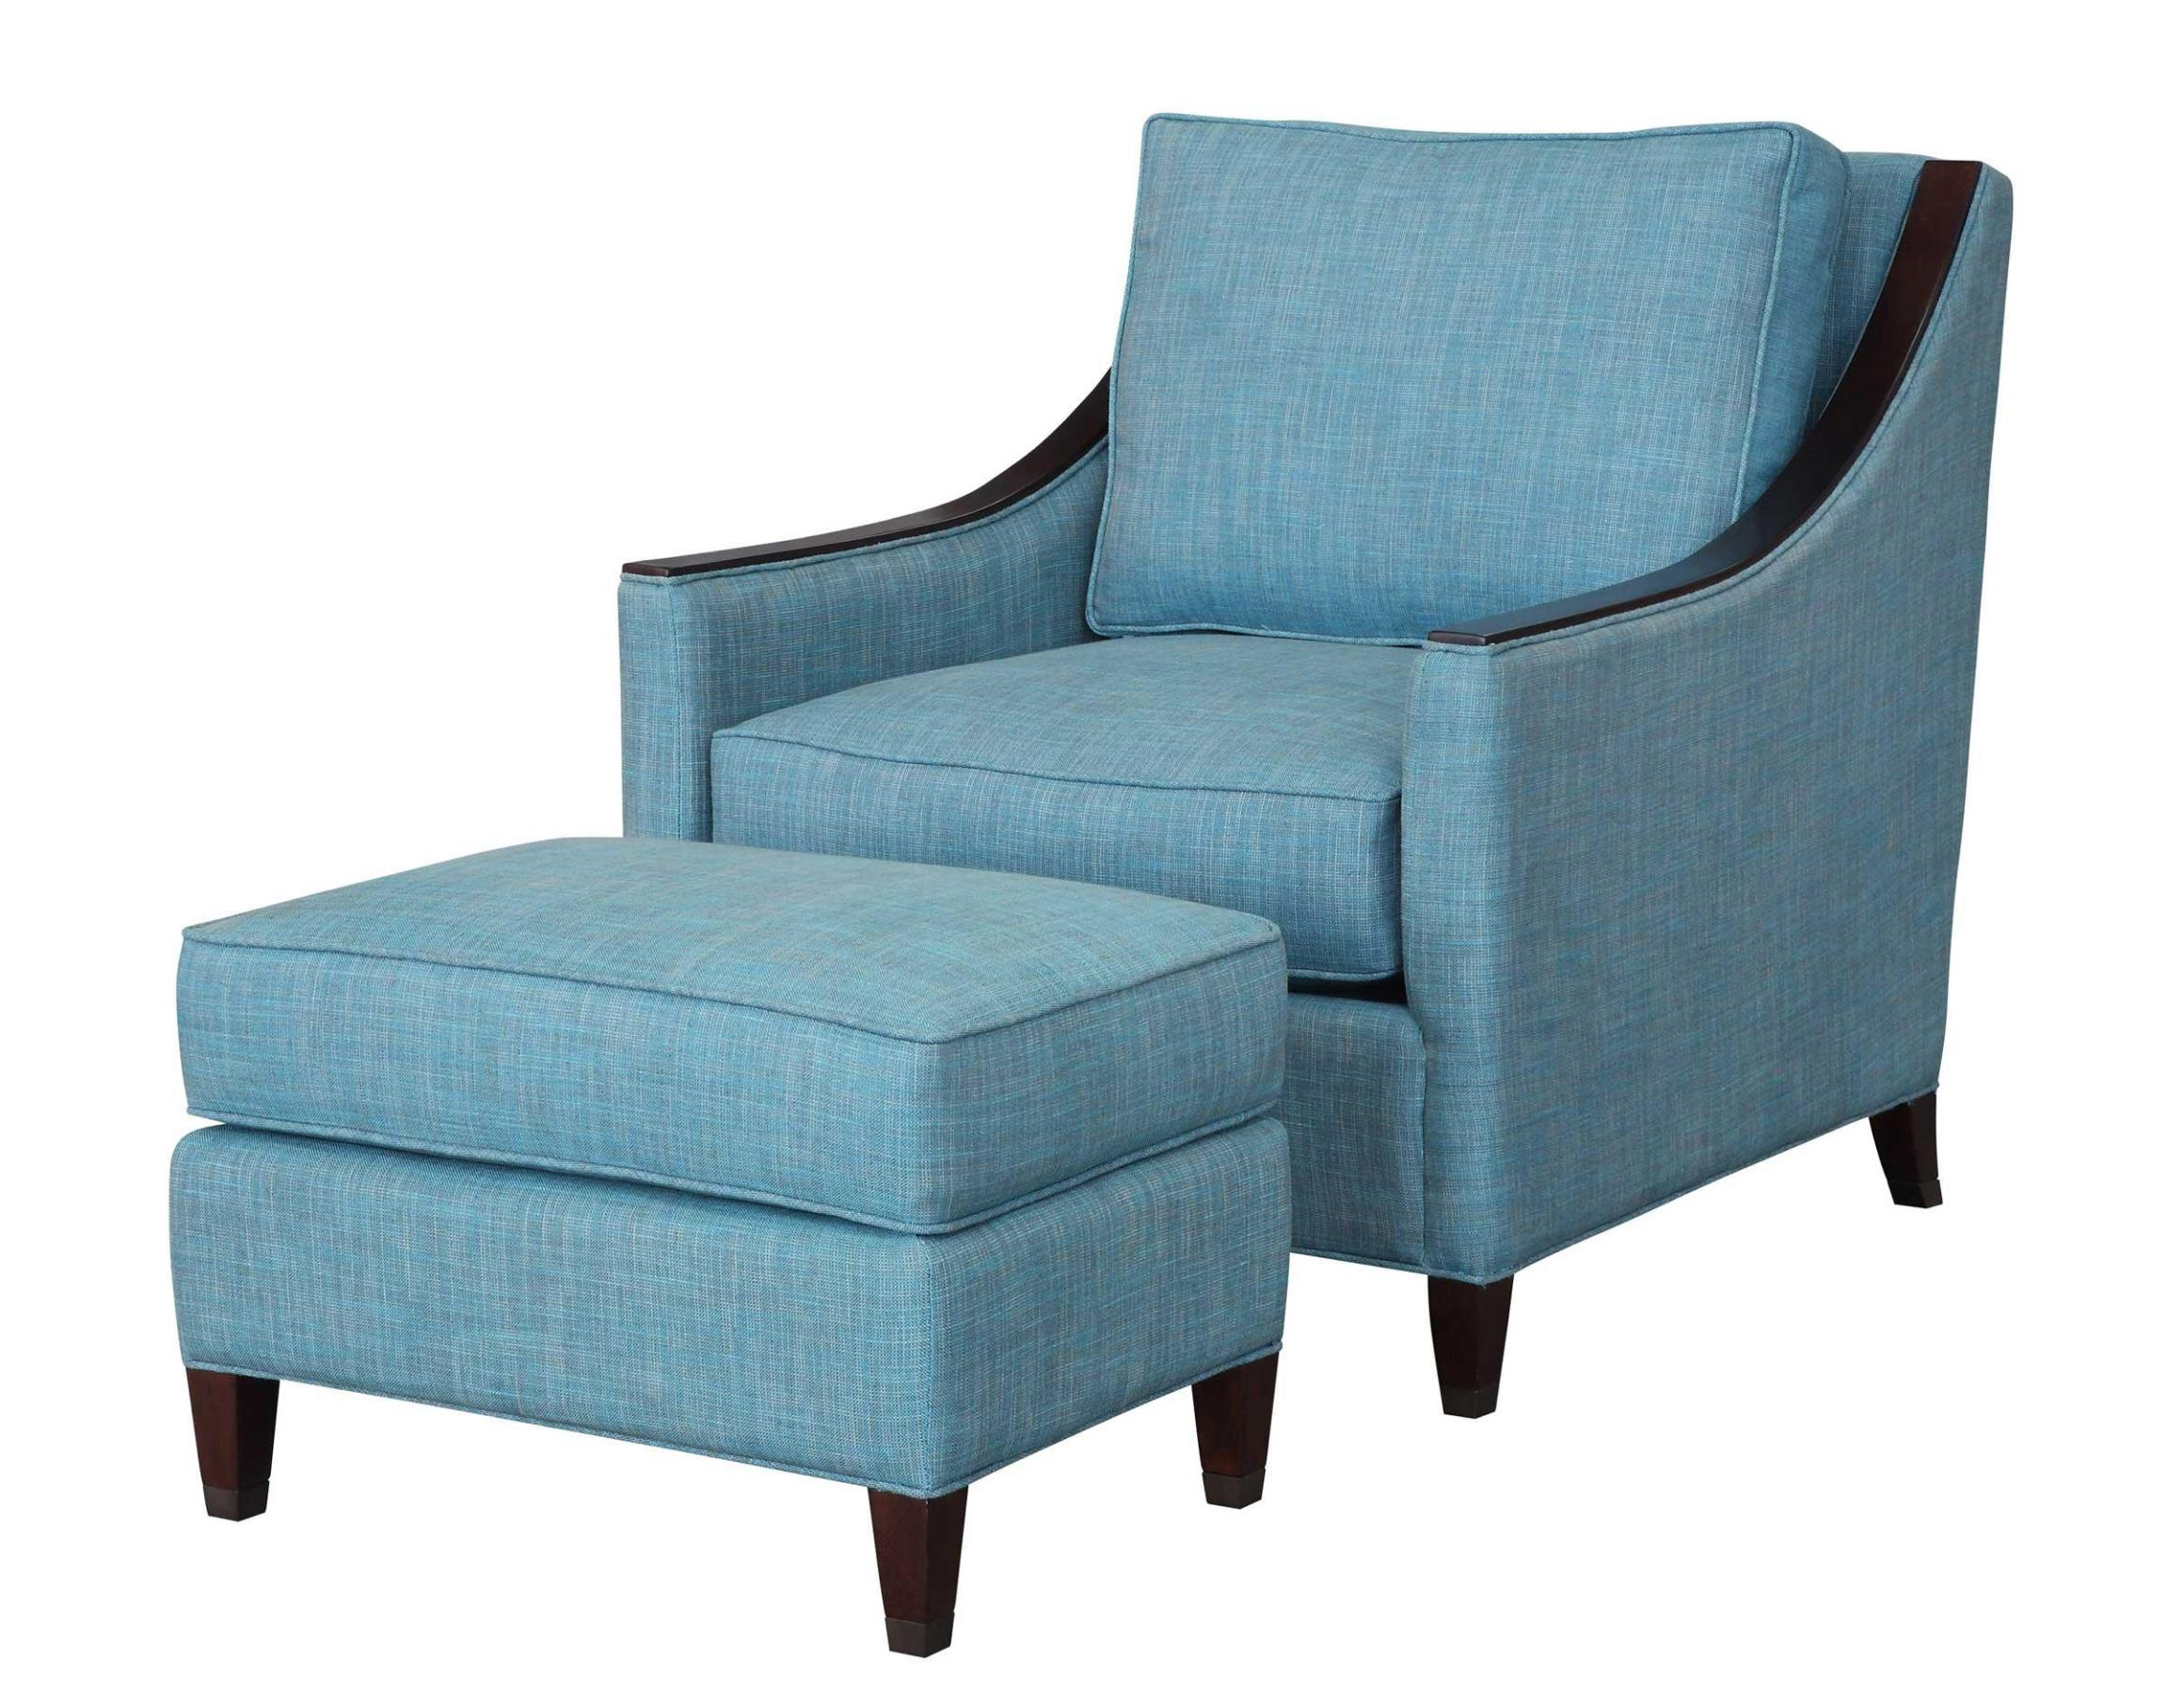 Image of: Colorful Accent Chairs With Arms